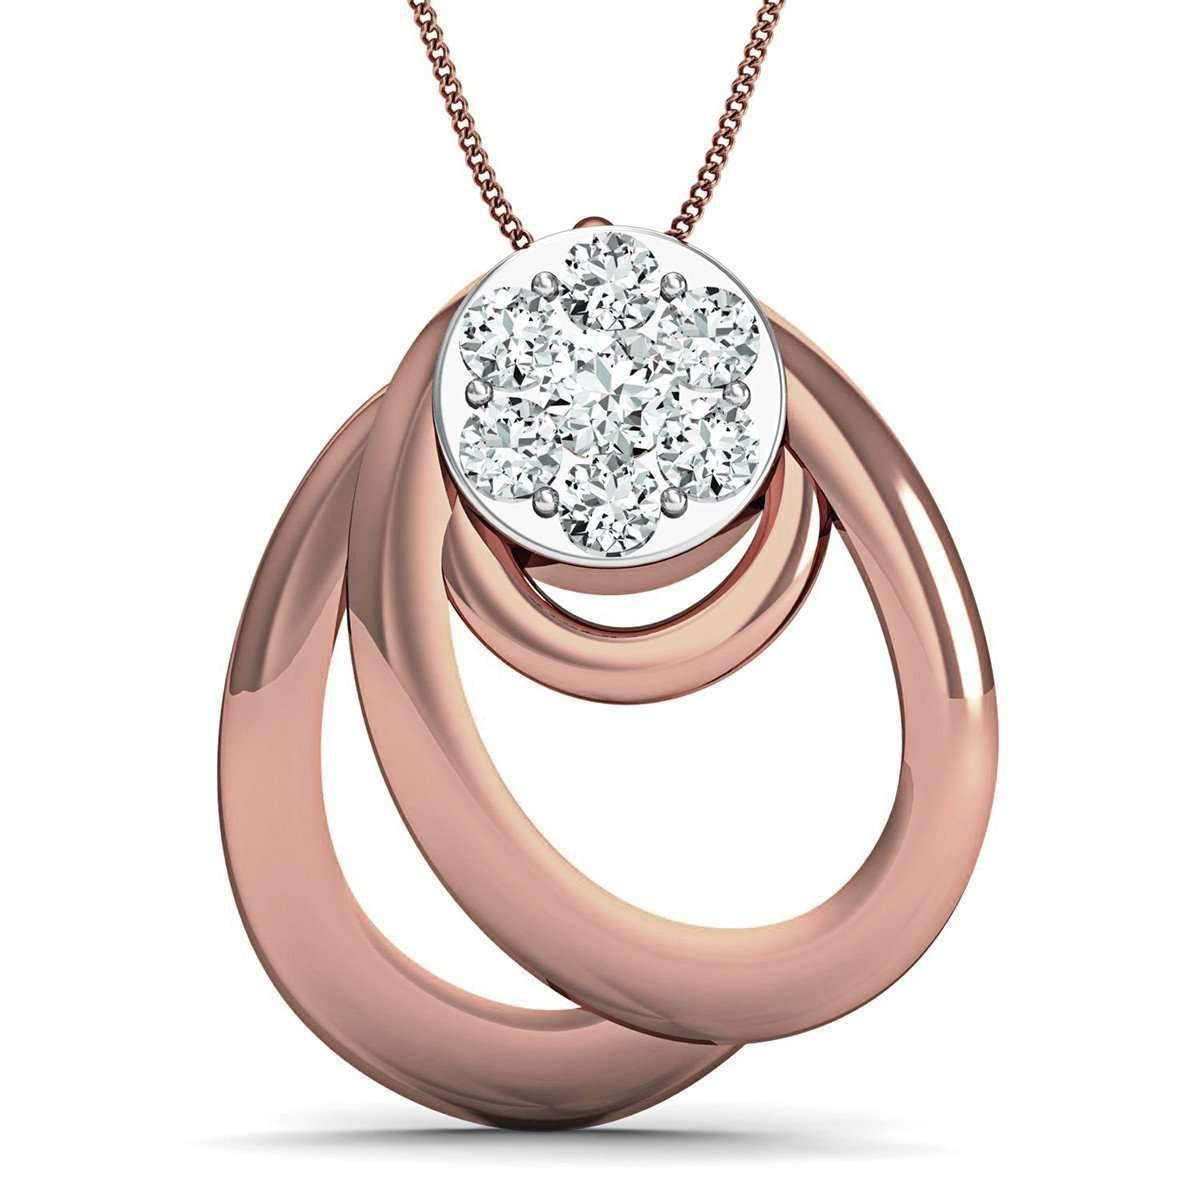 Diamoire Jewels Diamoire 18kt Rose Gold Diamond Pendant Inspired by Nature K0TlznT3